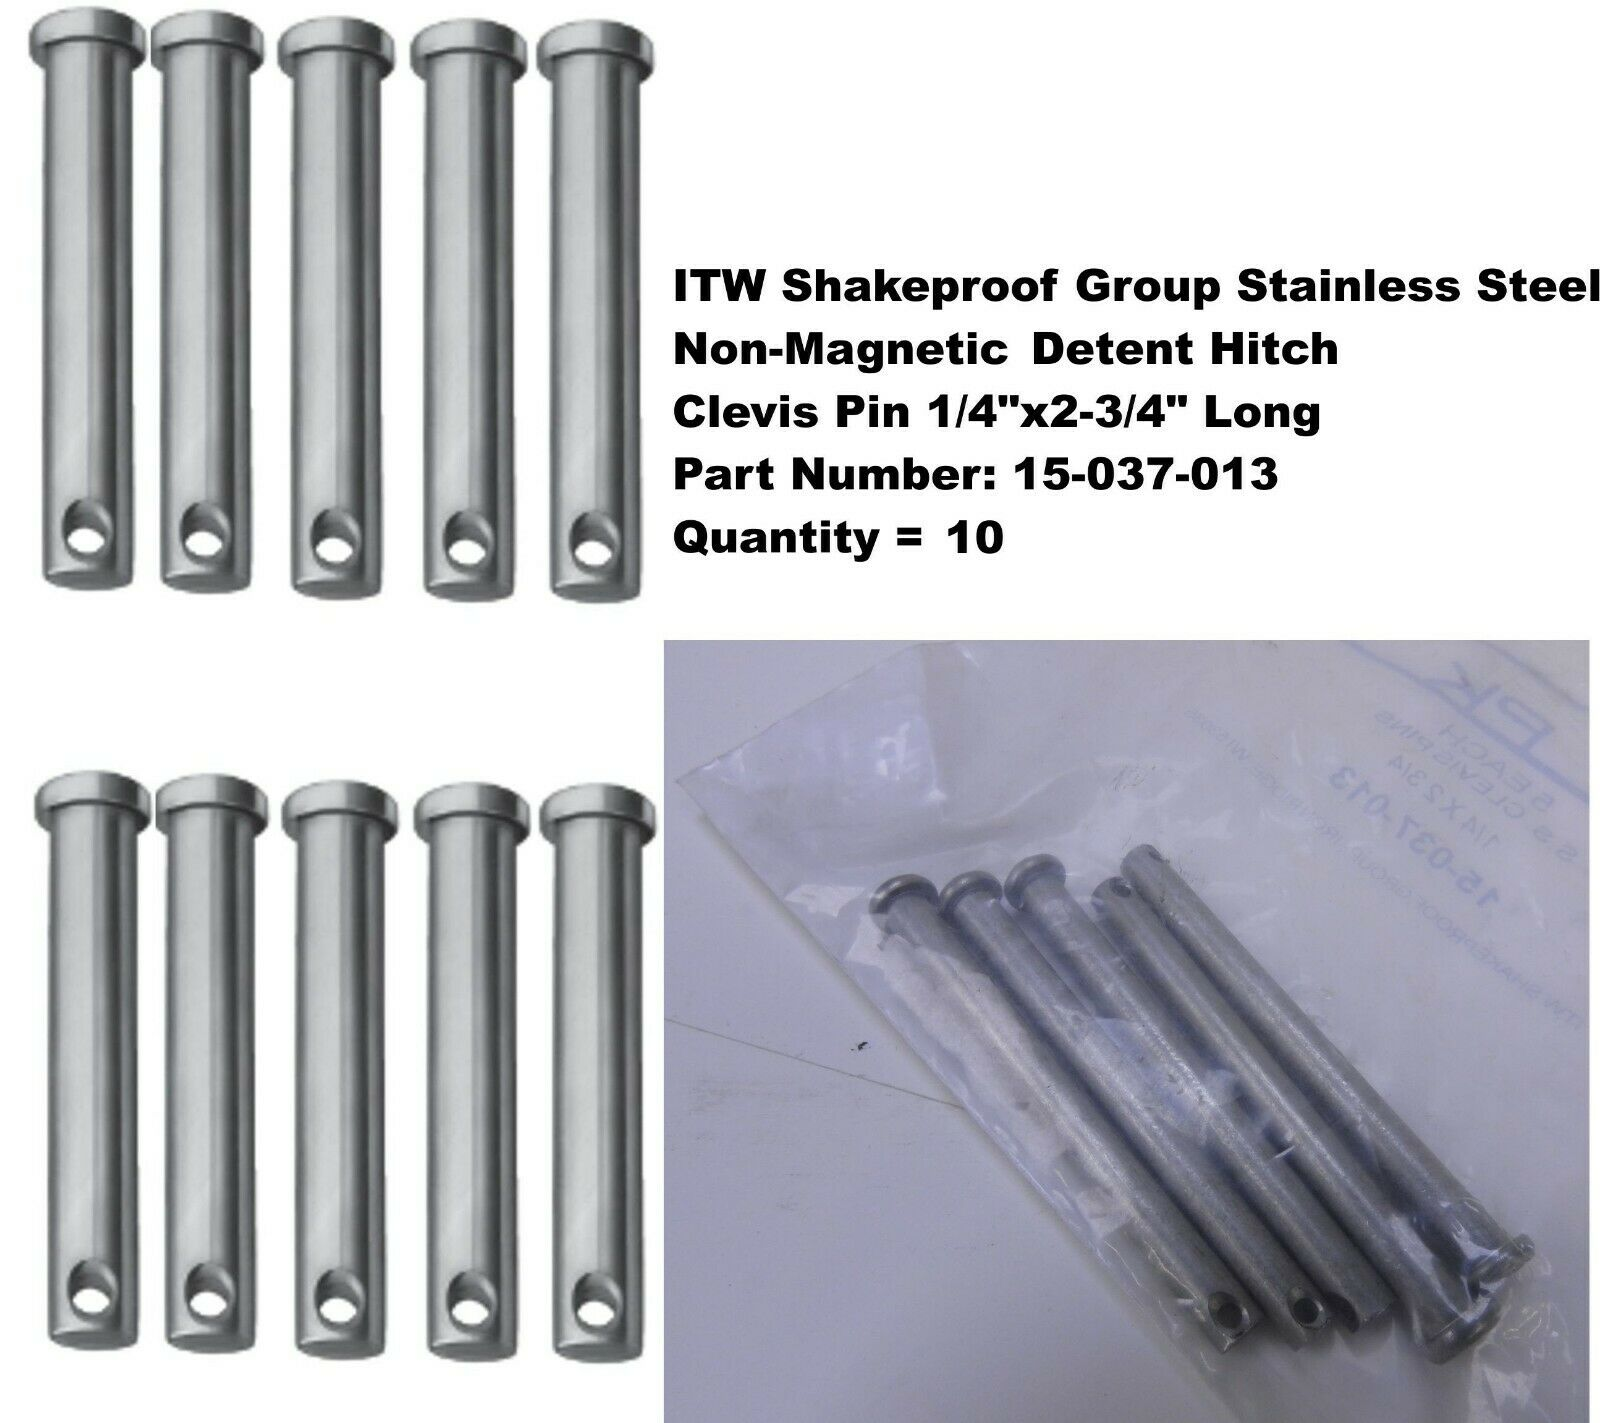 Quantity 10, ITW Stainless Steel Non-Magnetic Detent Clevis Pin